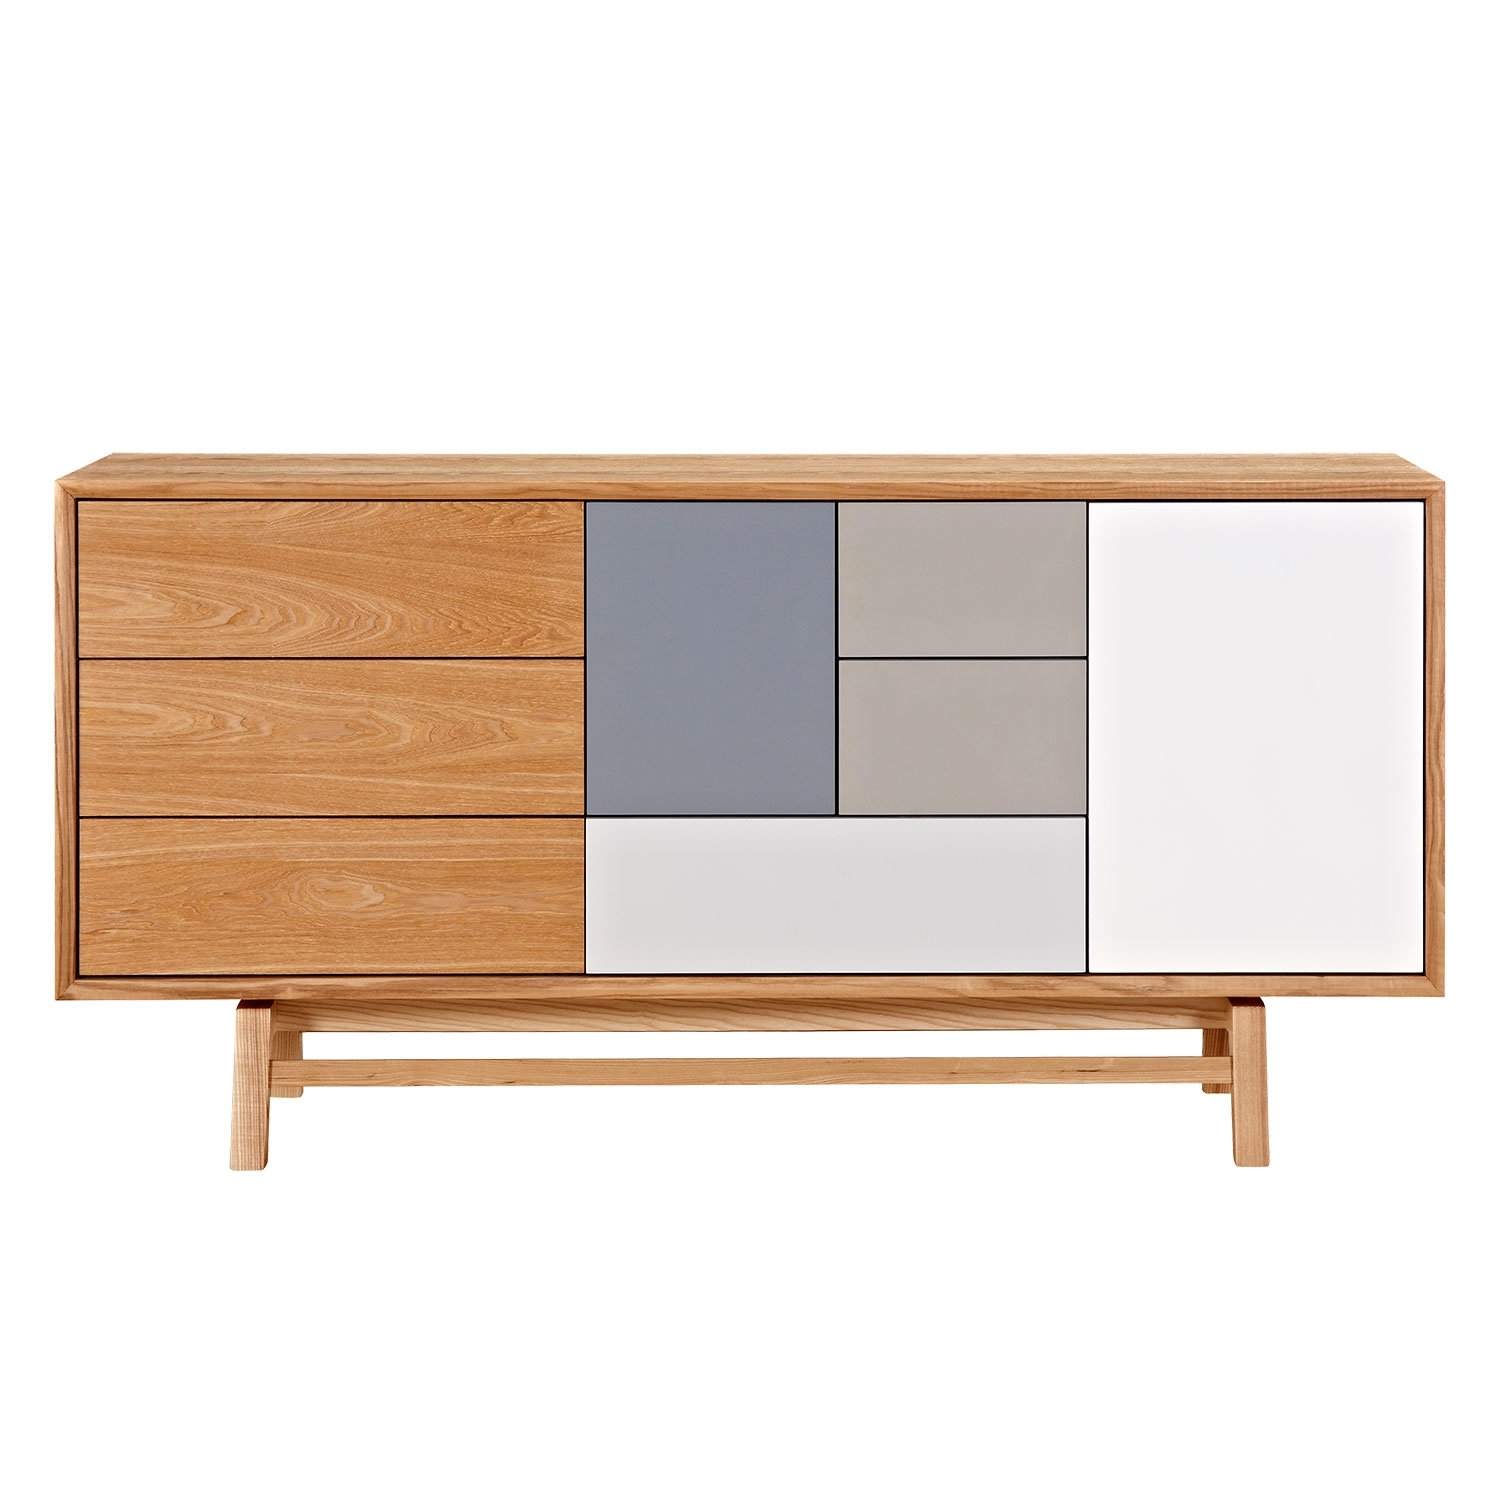 Nyekoncept Grane Sideboard | Wayfair With Most Recent Open Shelf Brass 4 Drawer Sideboards (View 5 of 20)